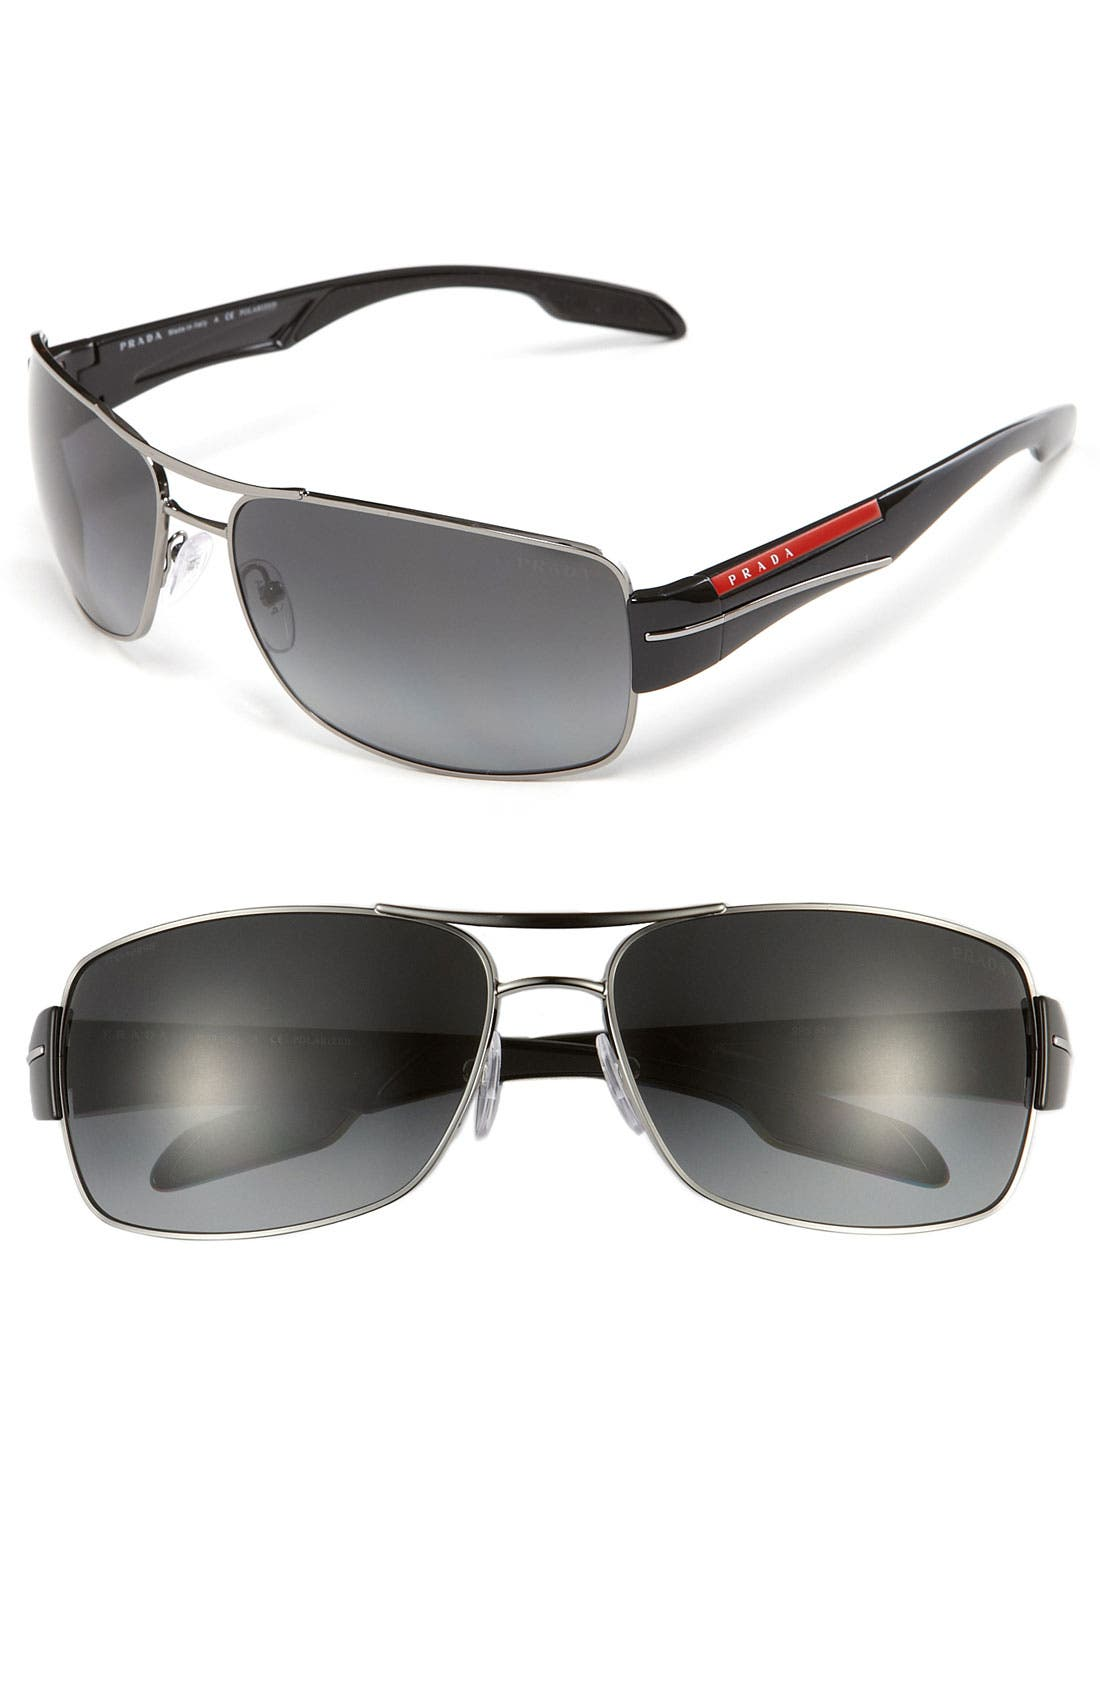 Main Image - Prada 65mm Sunglasses